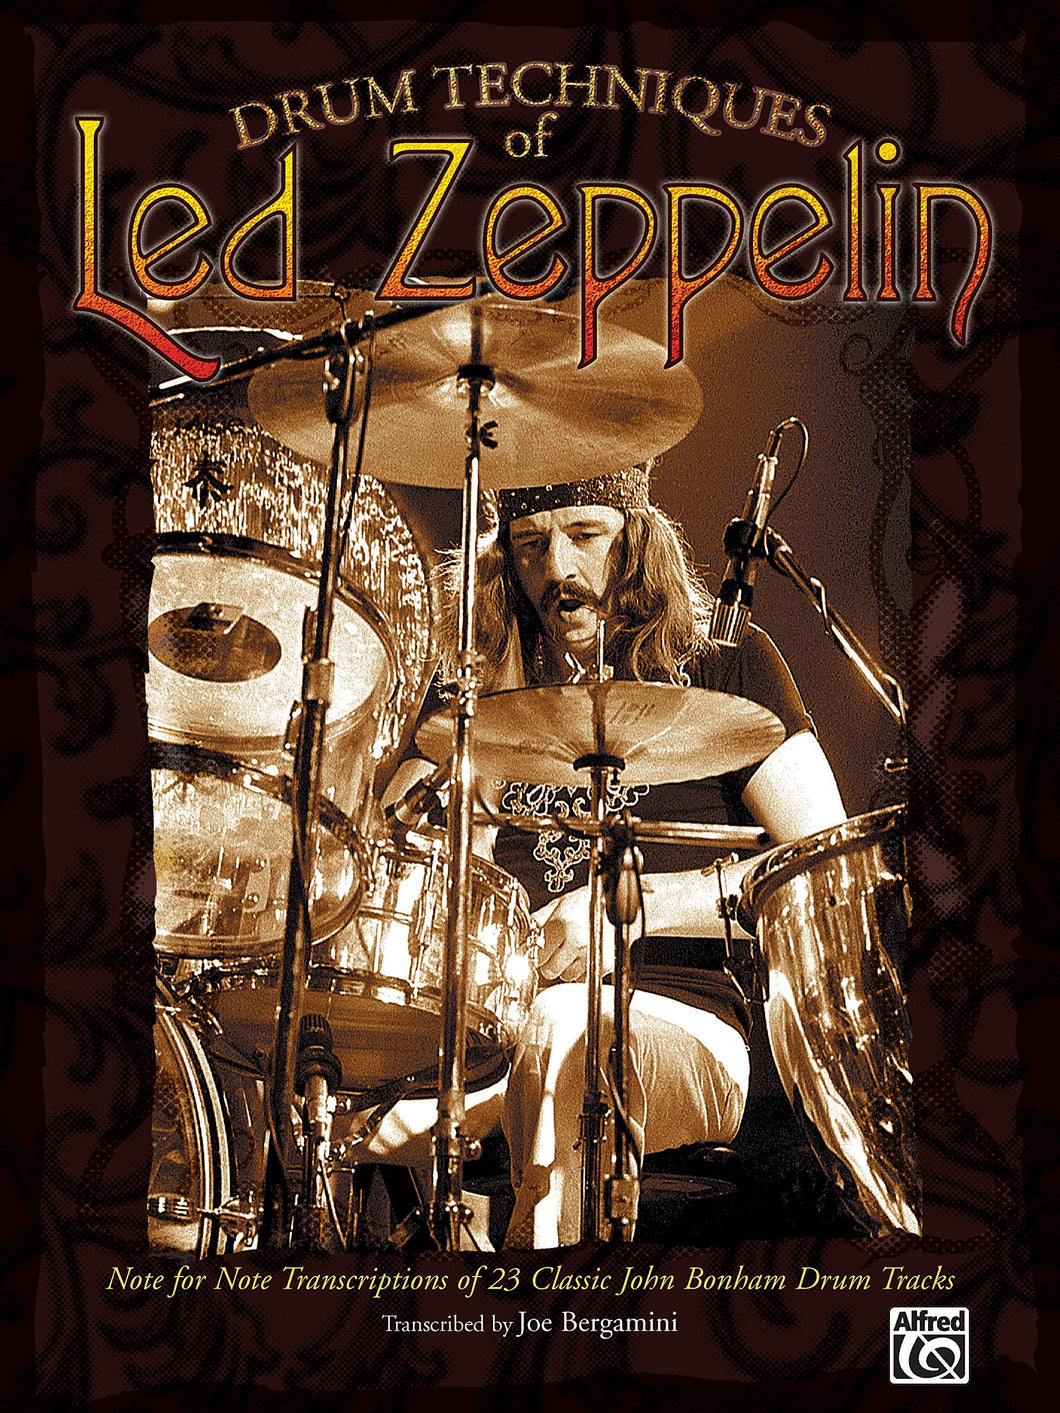 Living Loving Maid (She's Just A Woman) - Led Zeppelin - Collection of Drum Transcriptions / Drum Sheet Music - Alfred Music DTLZNFNT